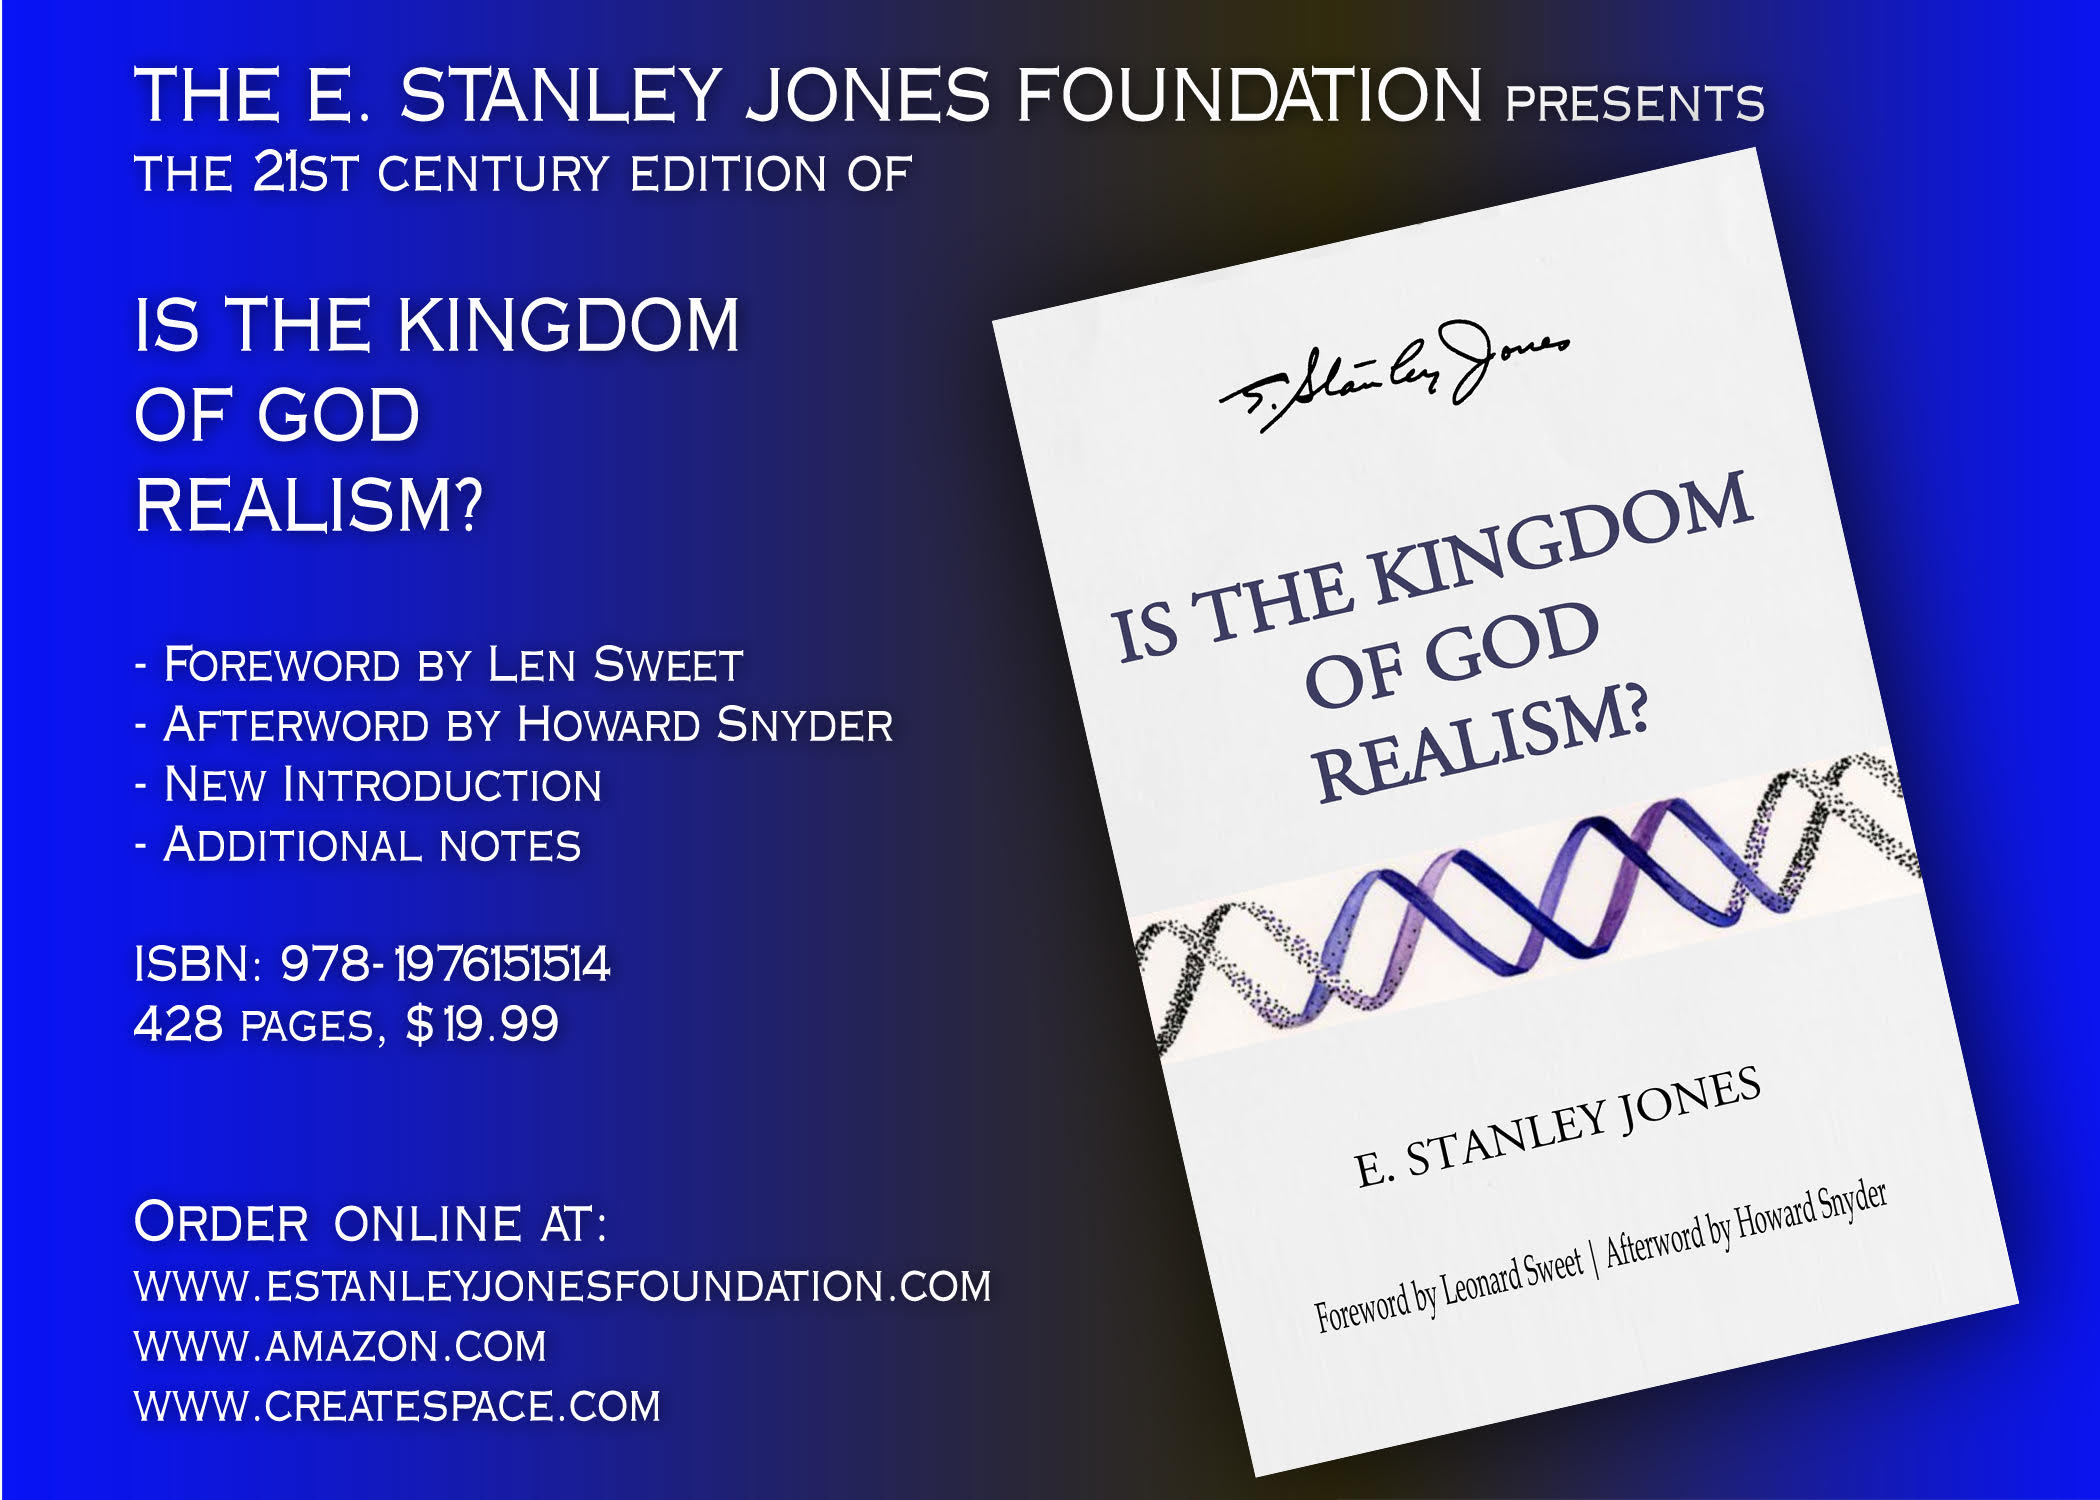 Is the Kingdom of God Realism?